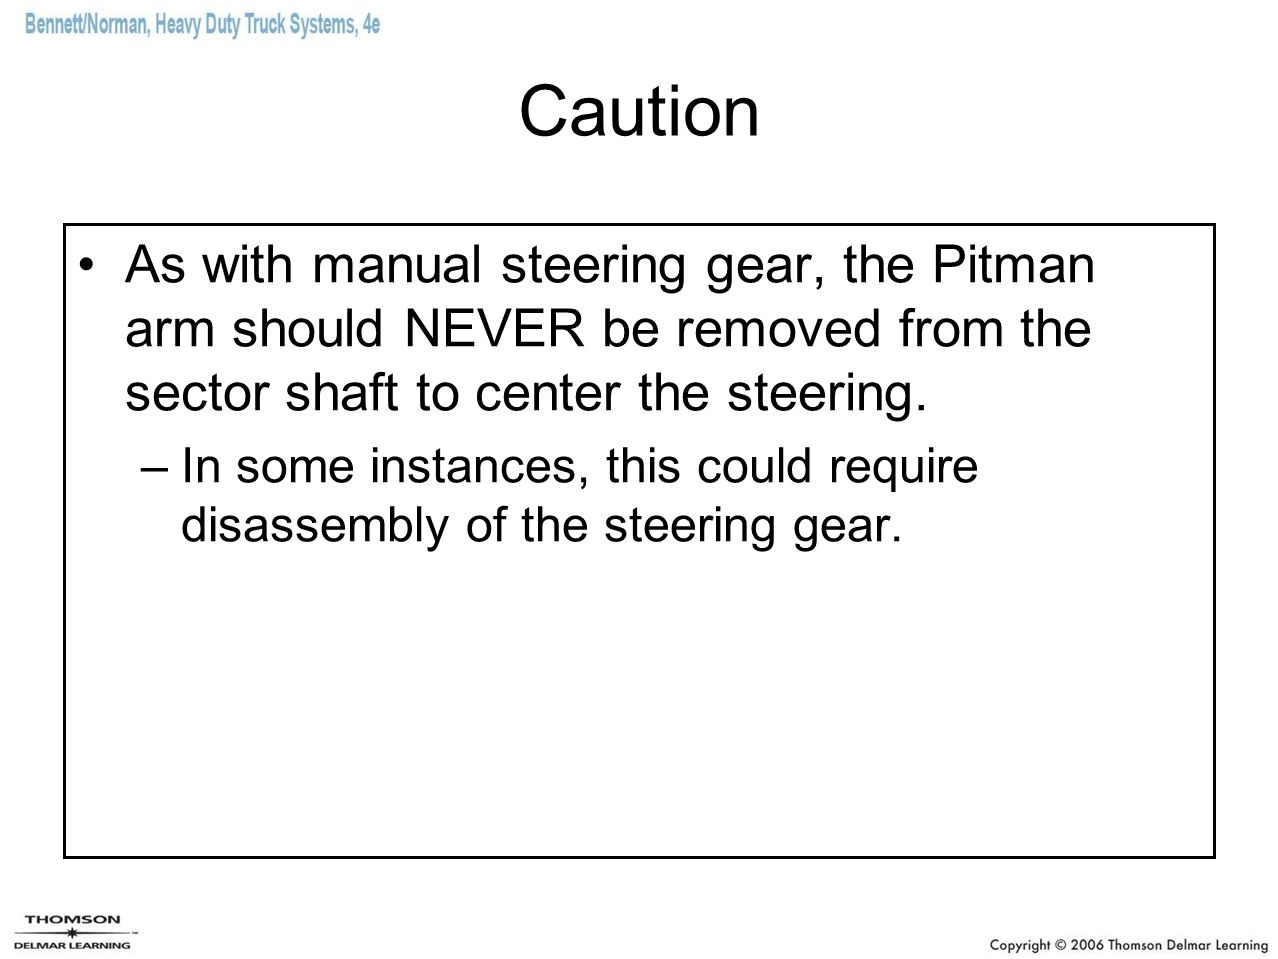 Caution As with manual steering gear, the Pitman arm should NEVER be removed from the sector shaft to center the steering.